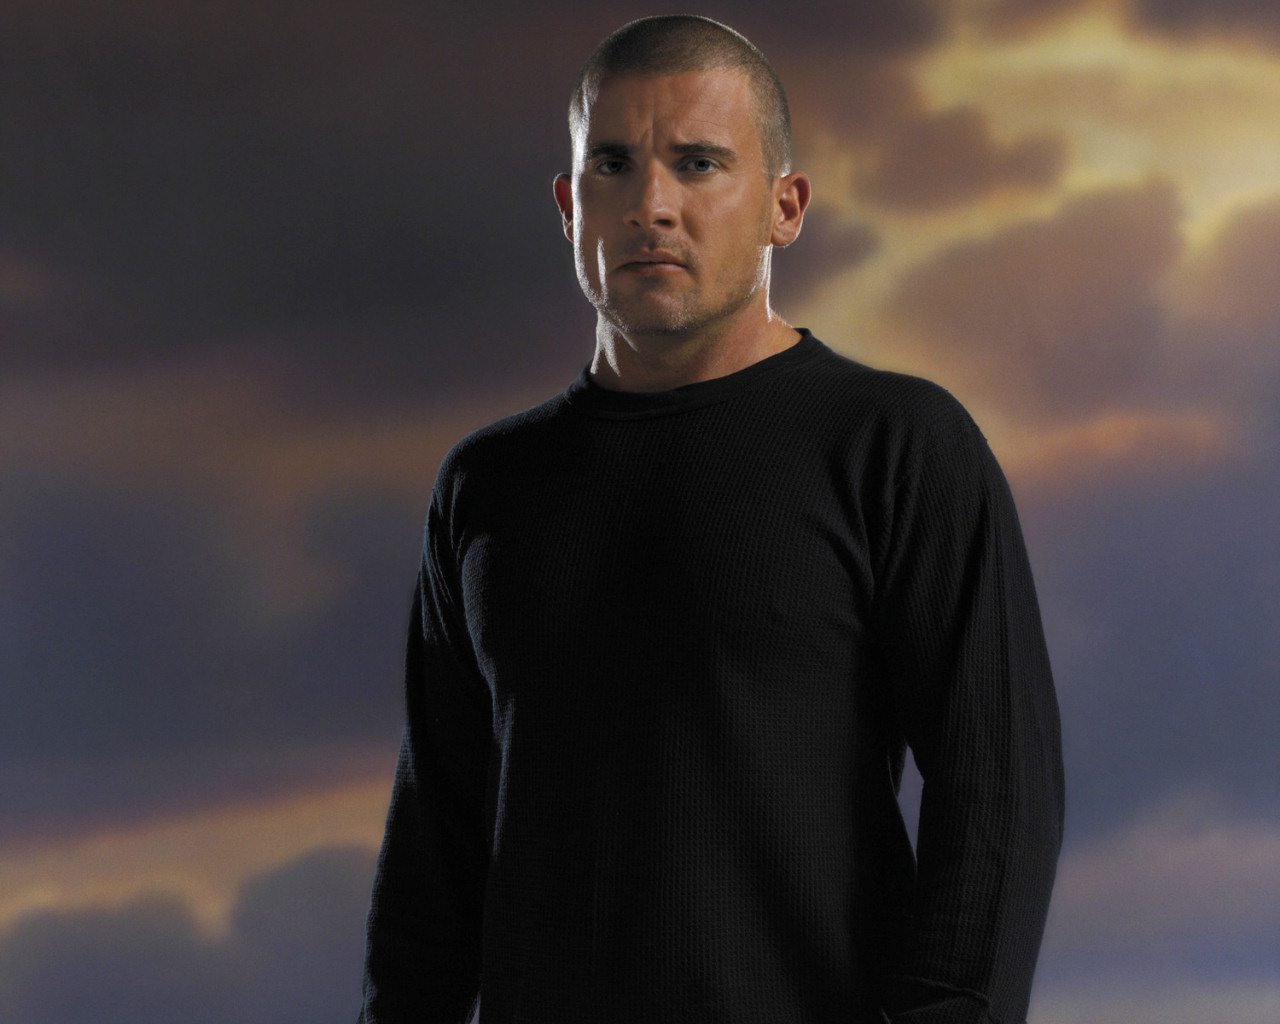 Dominic_Purcell_05_1280x1024.jpg